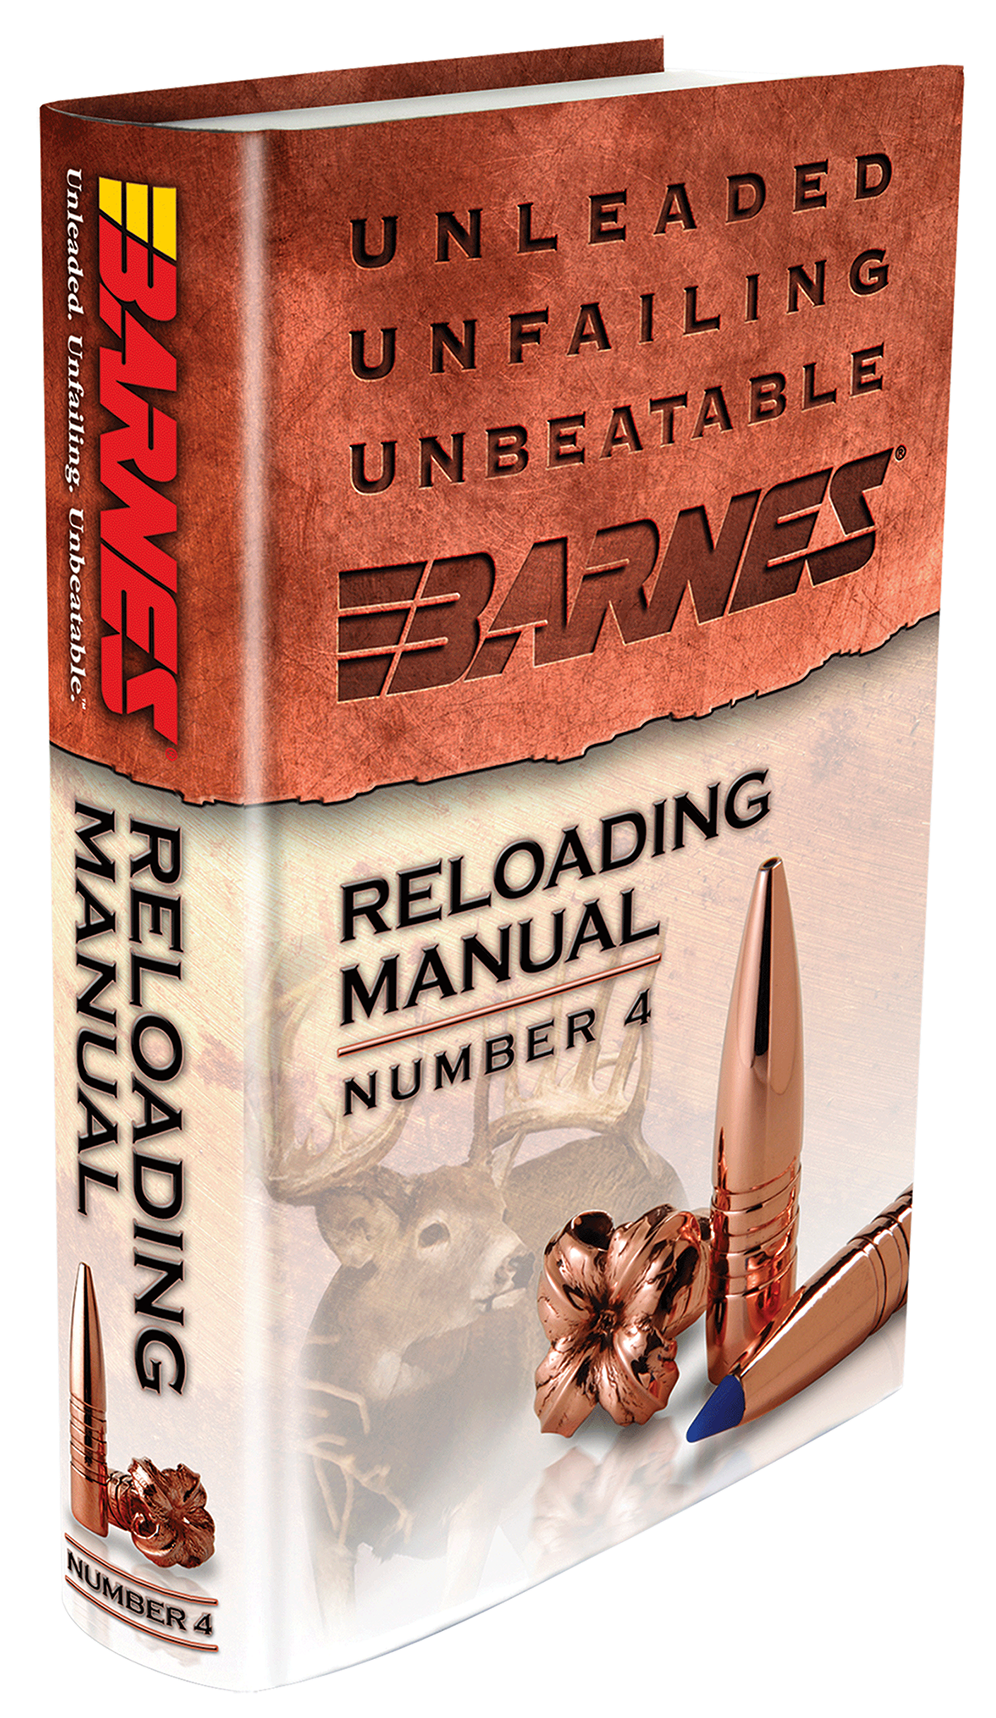 Barnes 30745 Reloading Manual Number 4